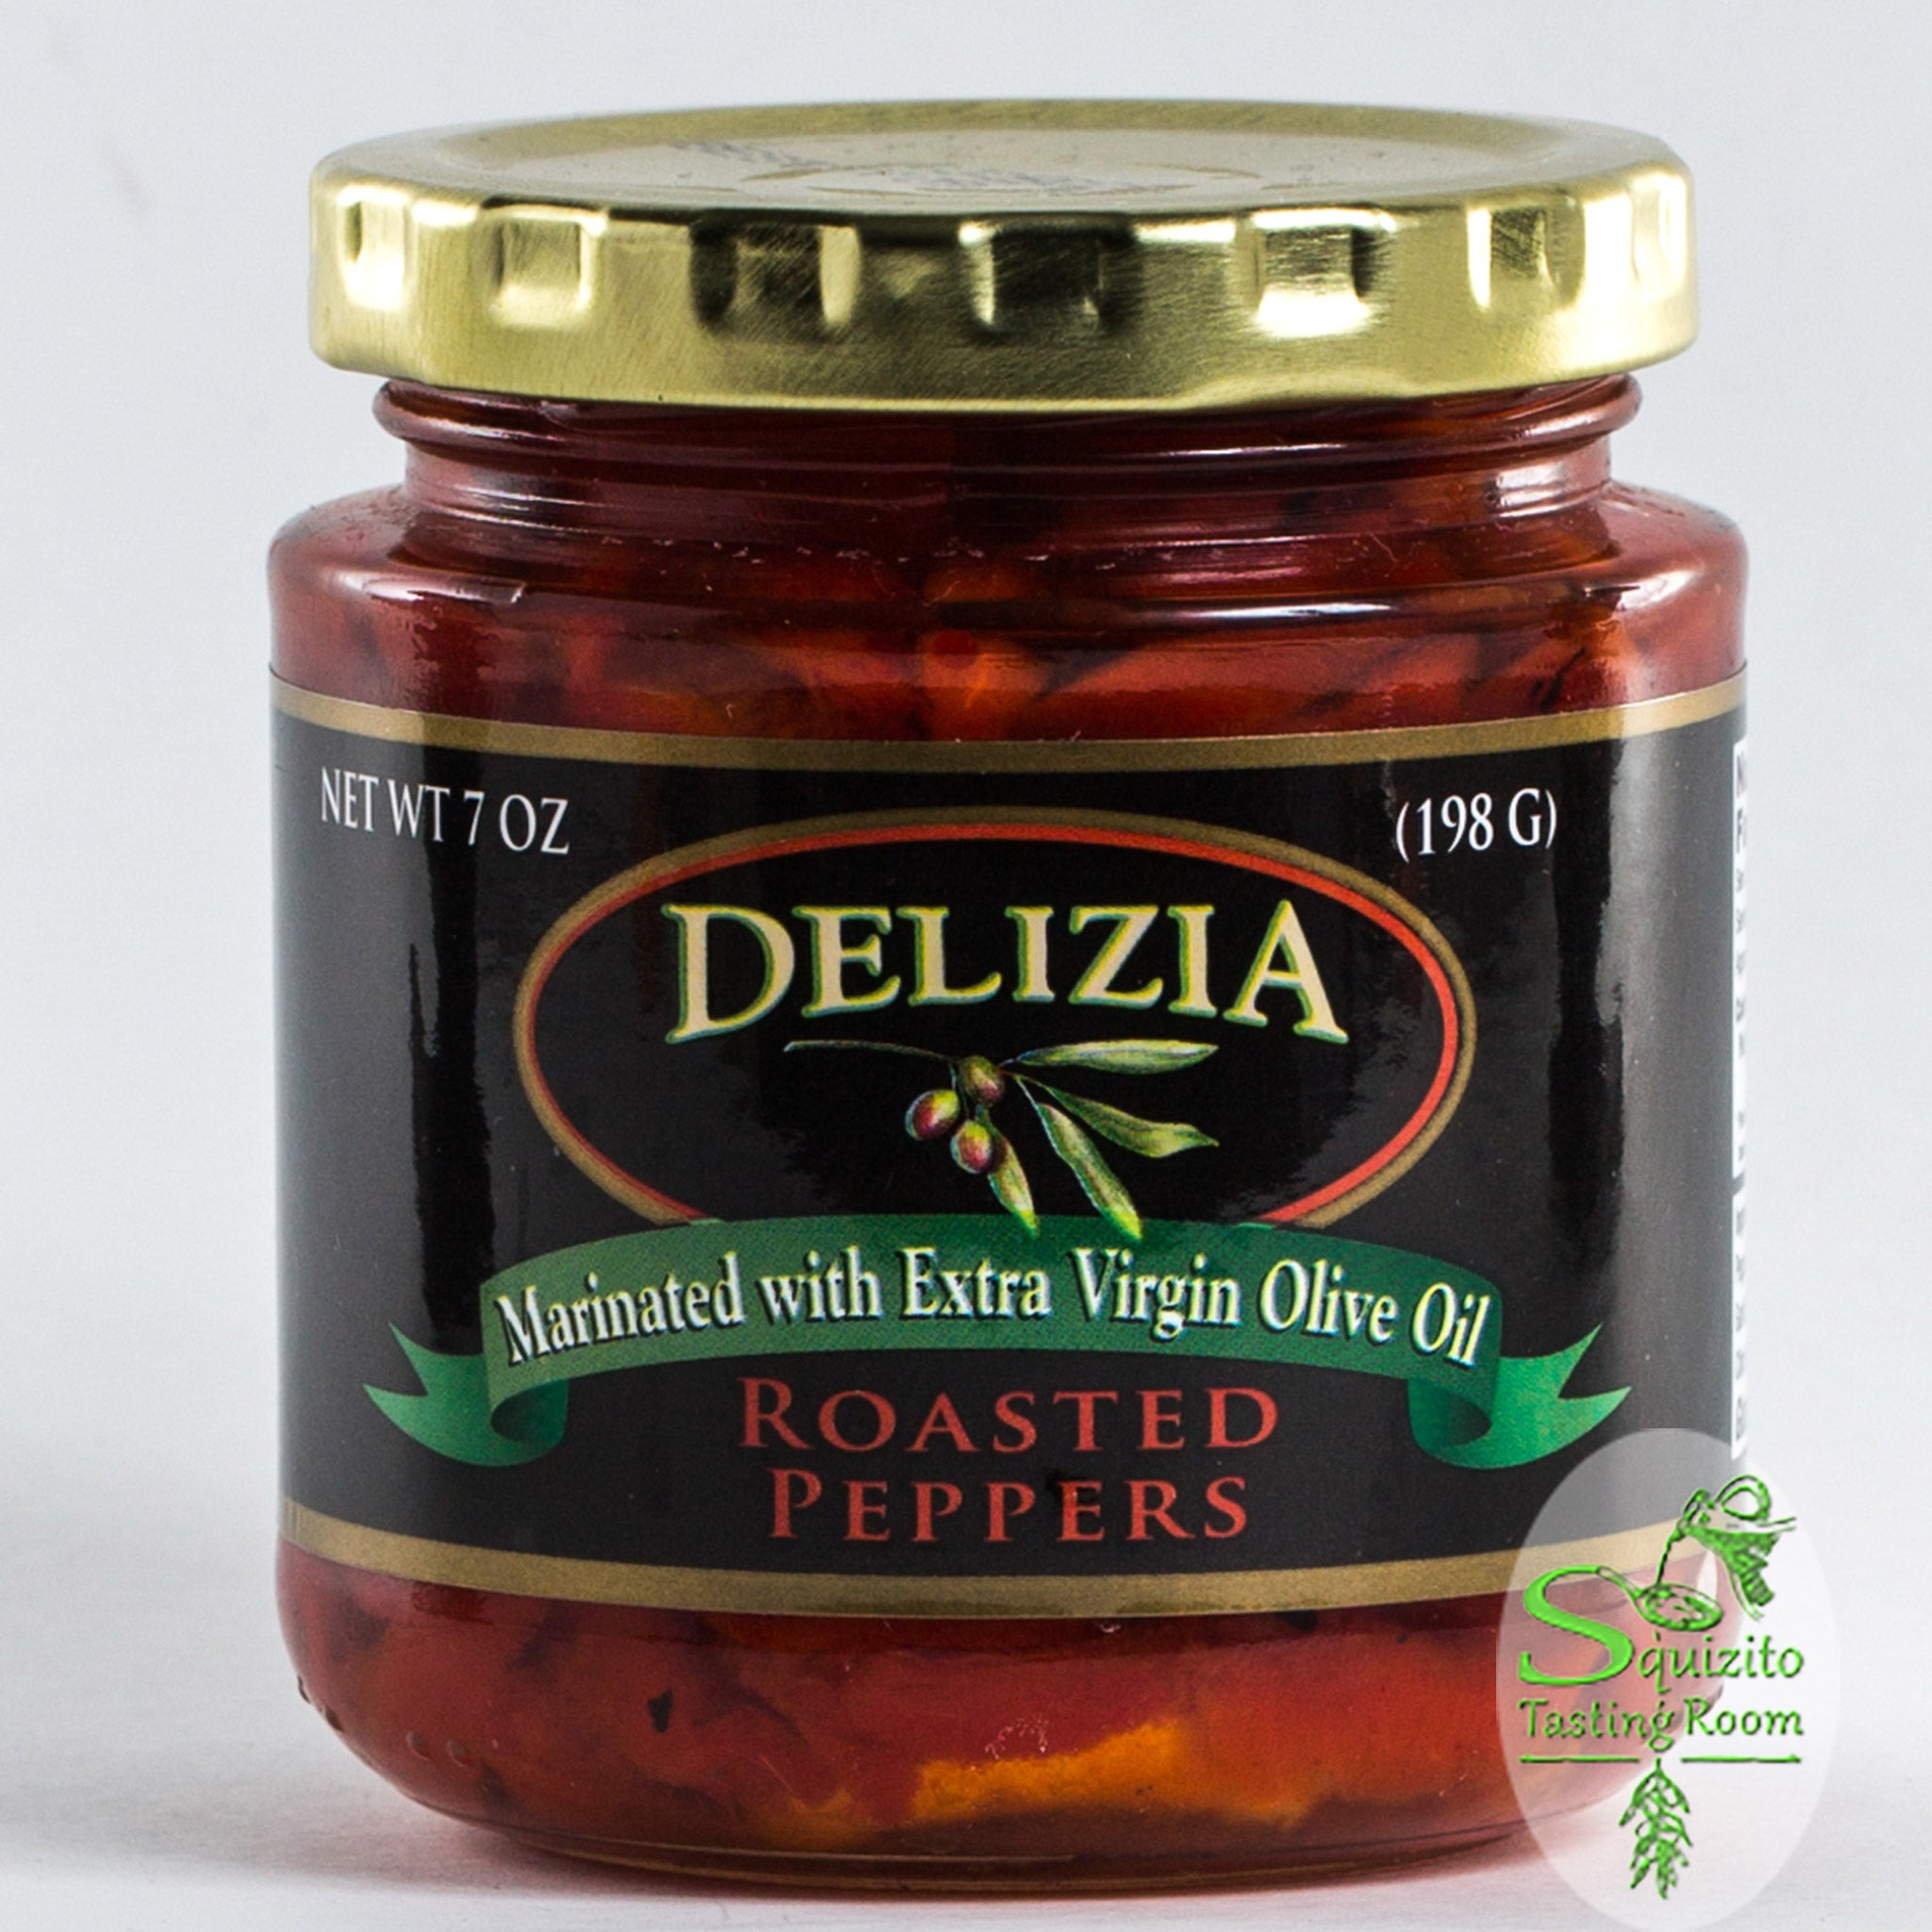 Buy Delizia Roasted Red Peppers Online at Squizito Tasting Room